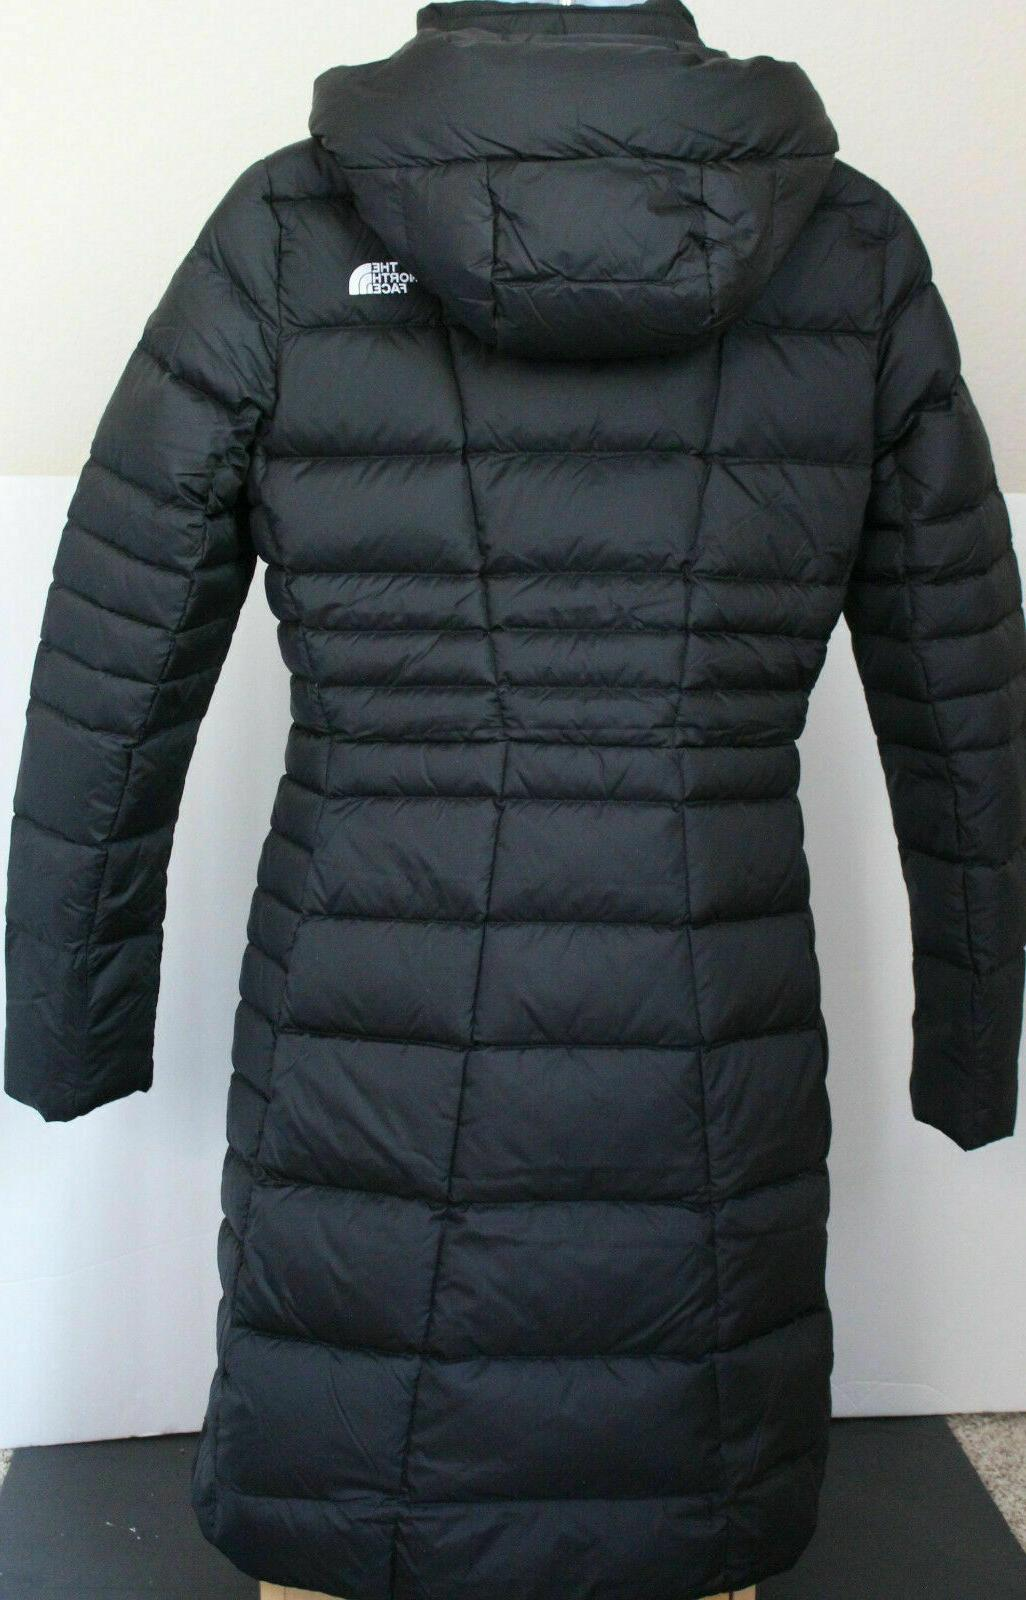 NWT The North Face Women's Parka Size M, L,XL